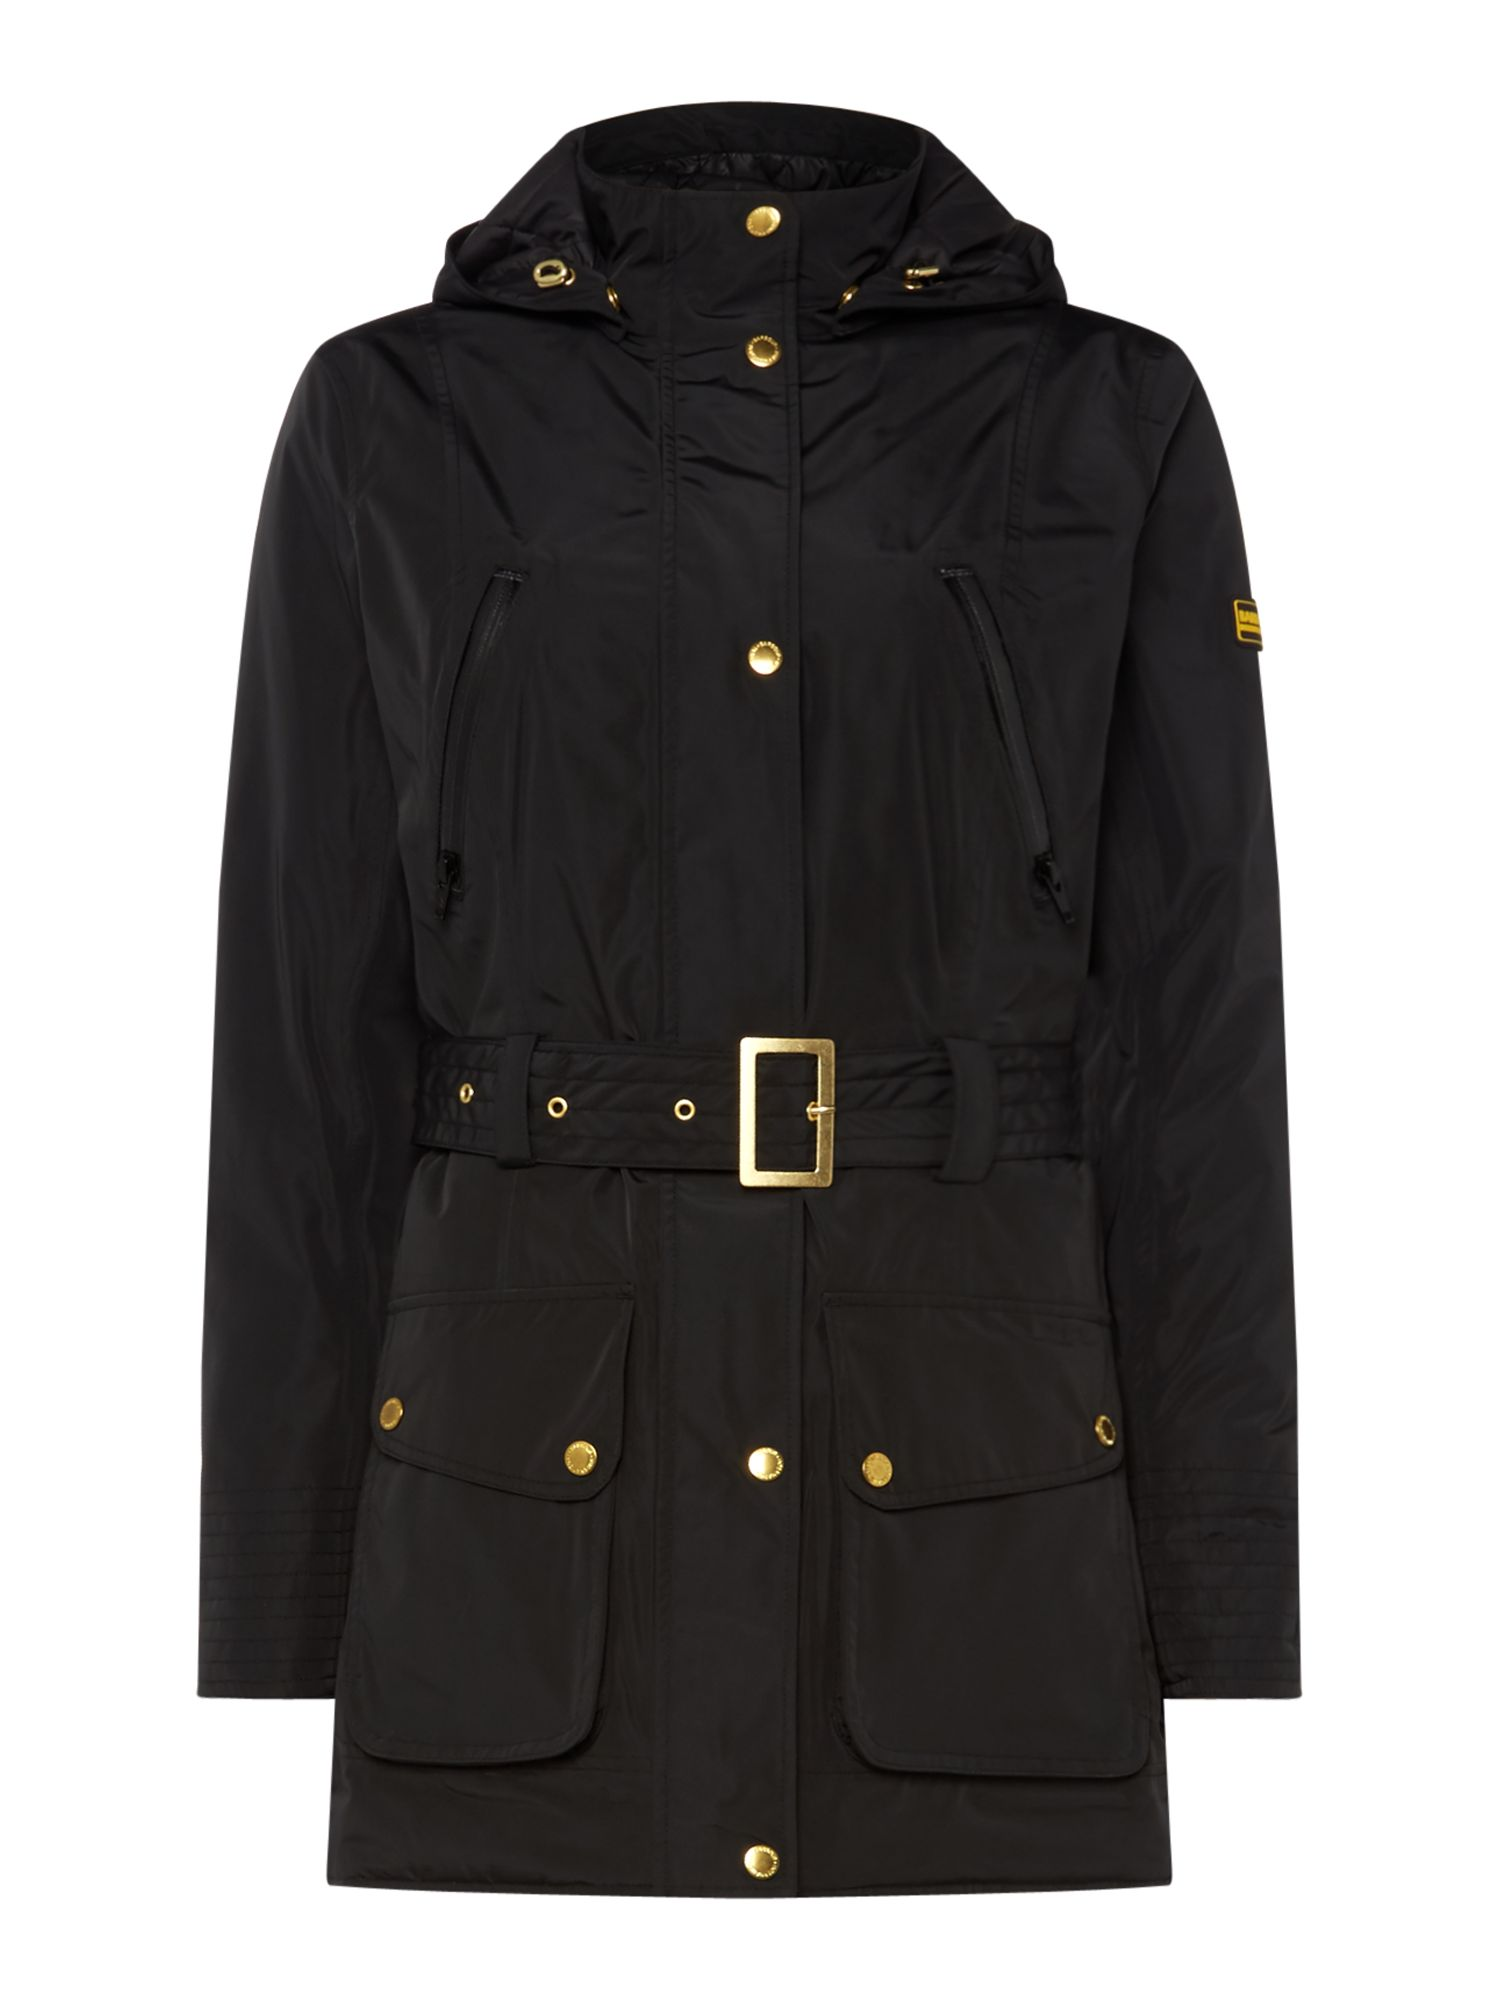 Barbour Maree Hodded and Belted Jacket, Black